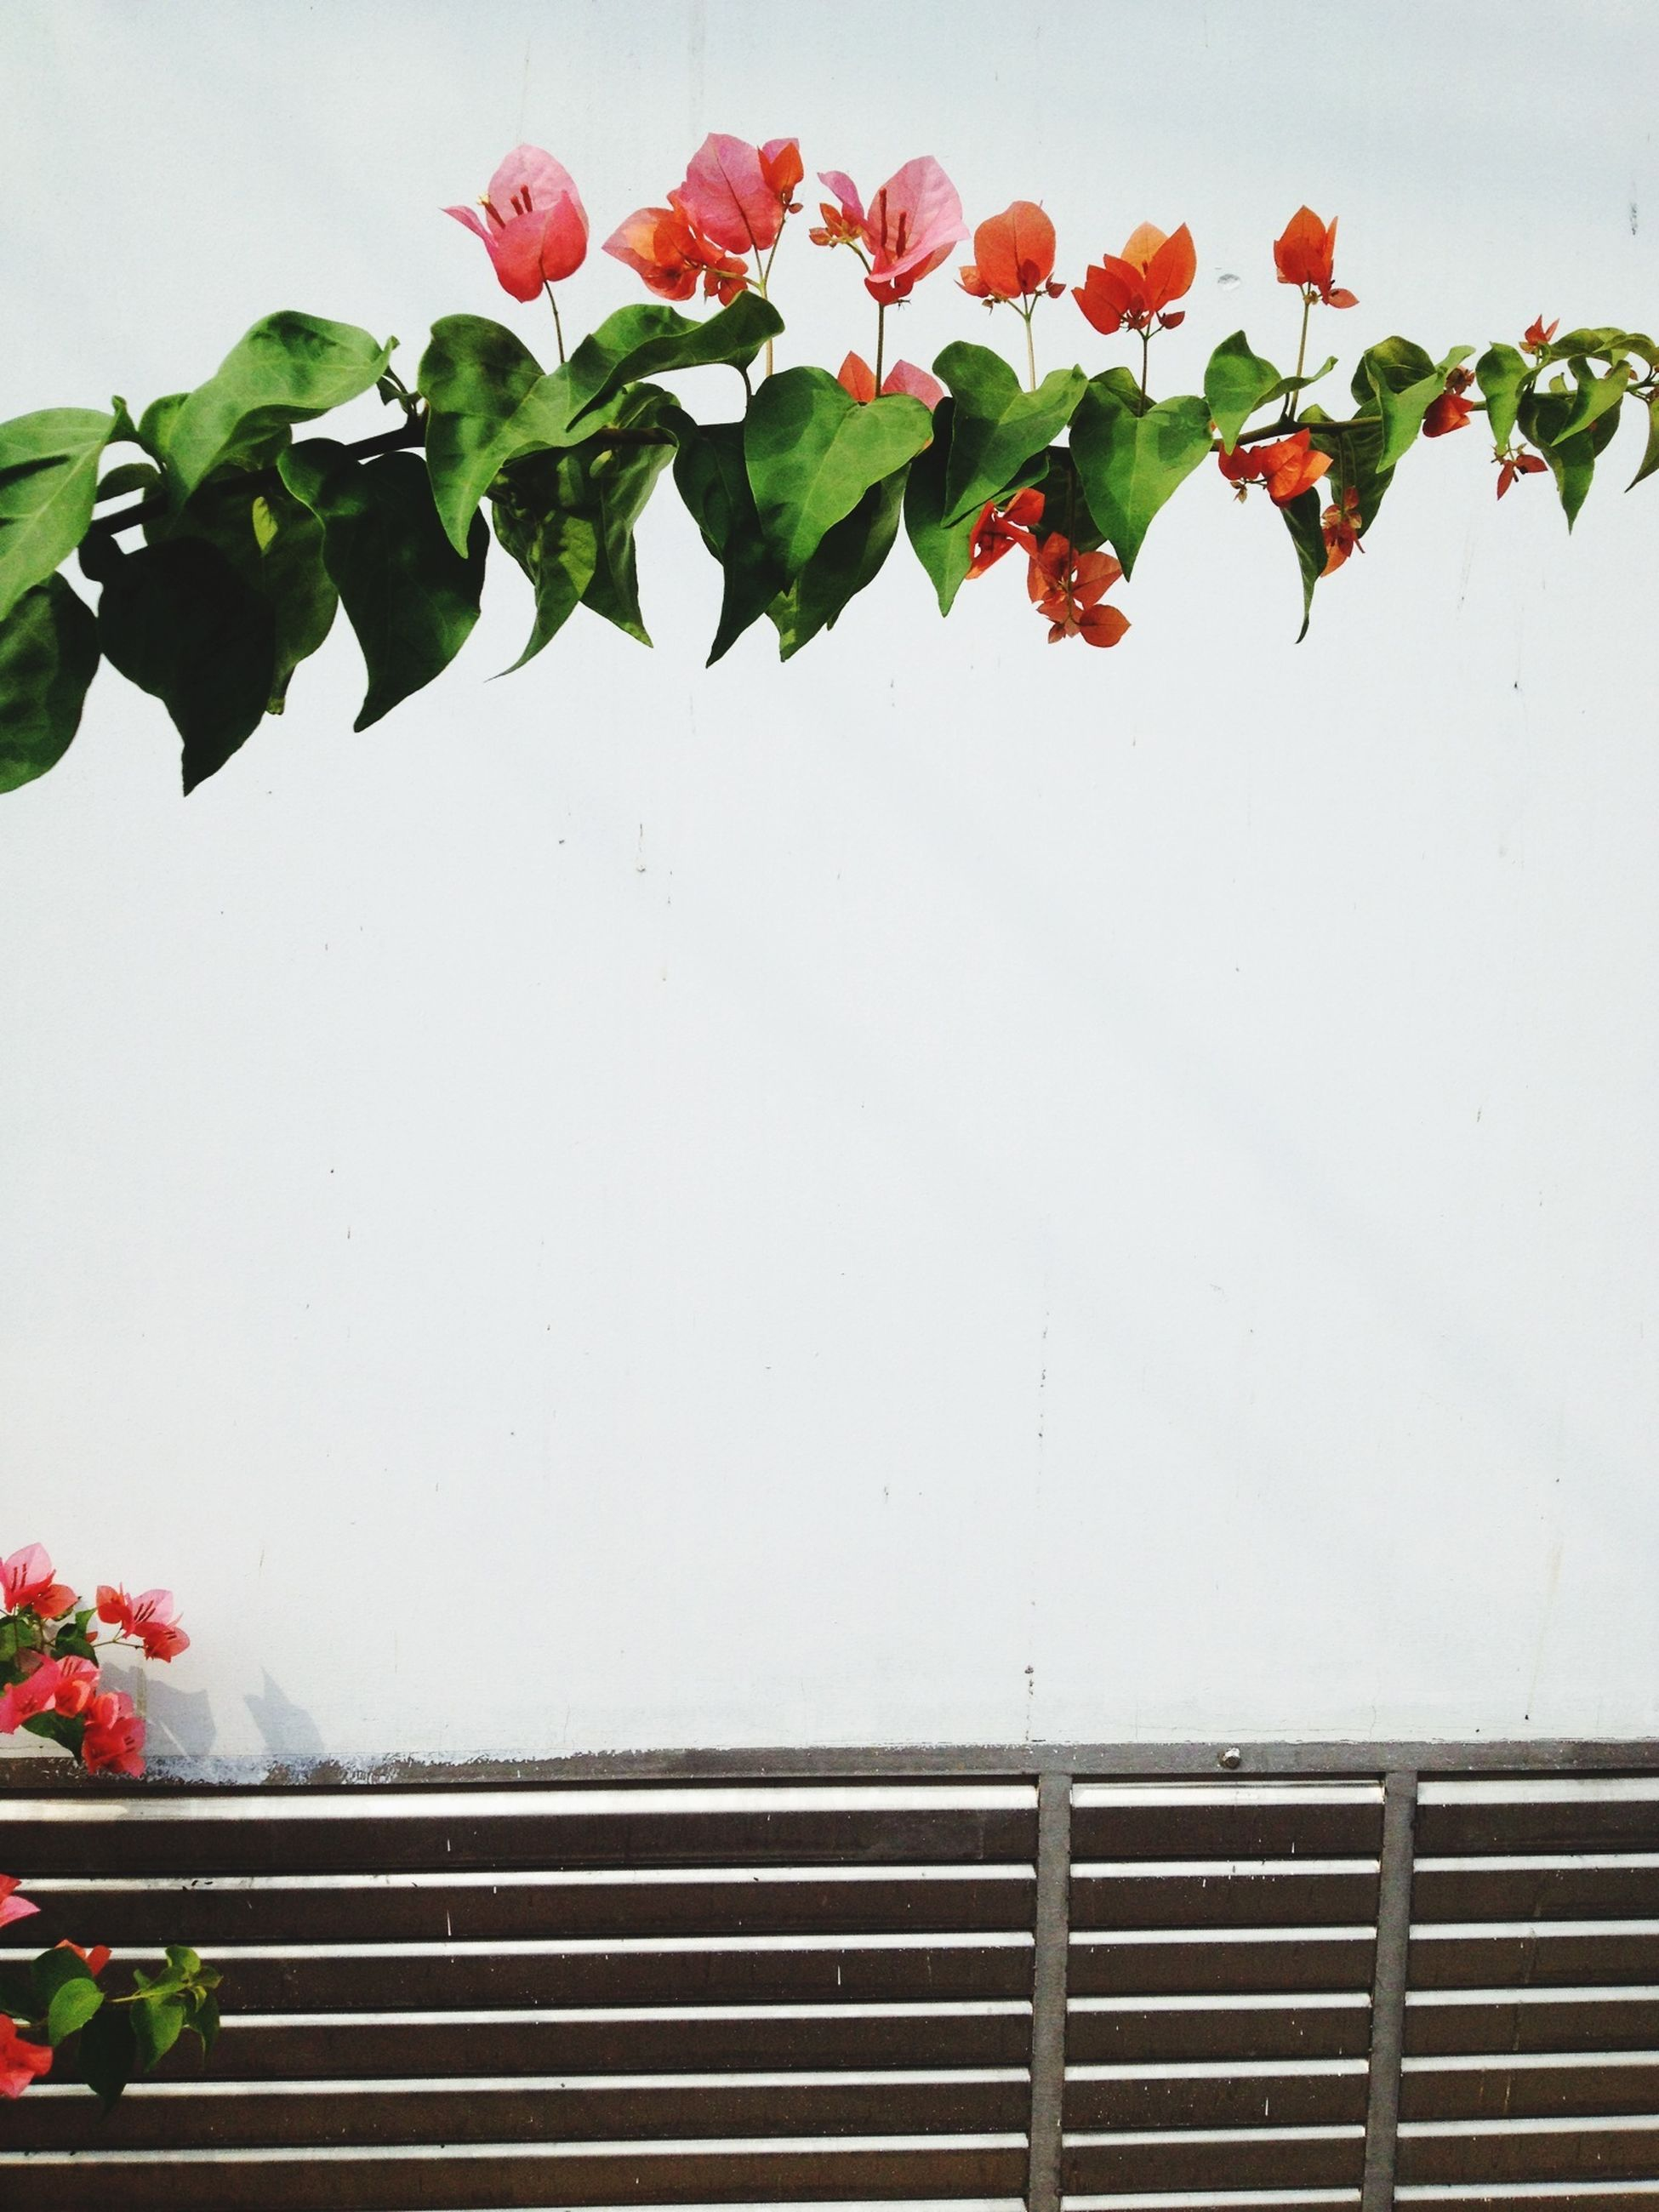 flower, growth, leaf, plant, freshness, fragility, low angle view, wall - building feature, built structure, nature, clear sky, architecture, building exterior, potted plant, beauty in nature, red, day, railing, window, wall